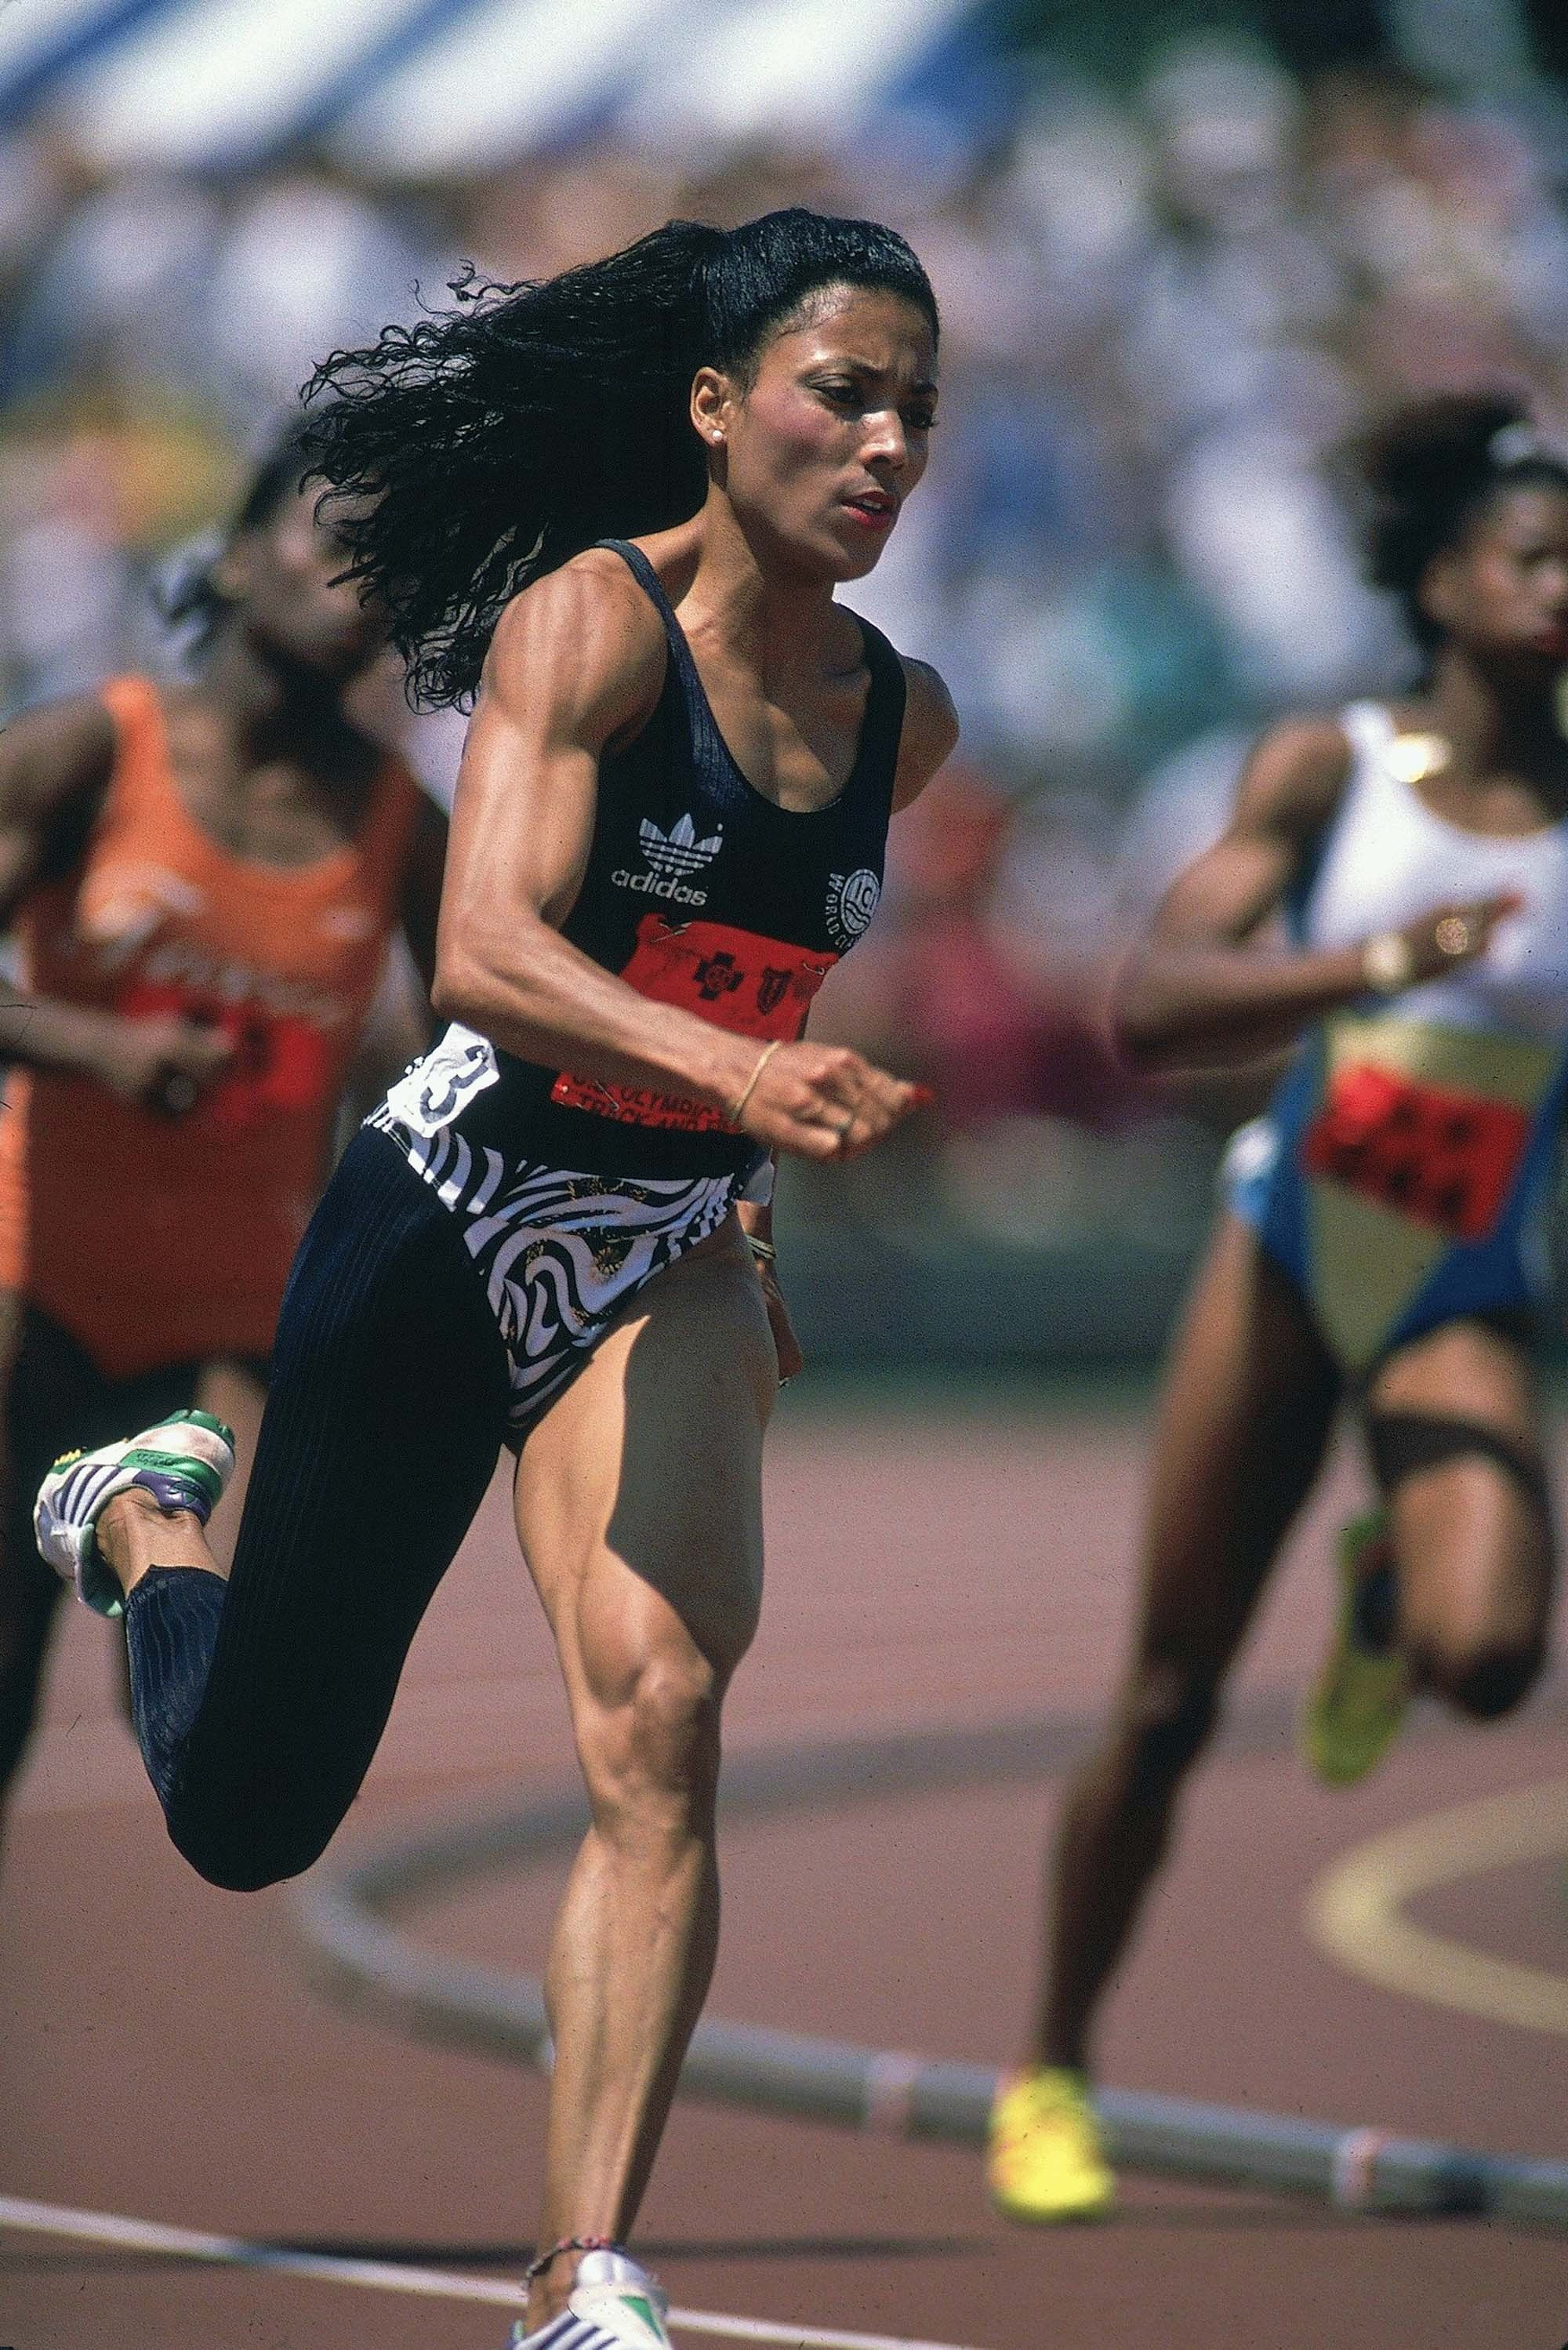 The Fastest Woman In The World Was The Most Fashionable Too Flo Jo S Olympics Style Female Athletes Flo Jo Olympics Style